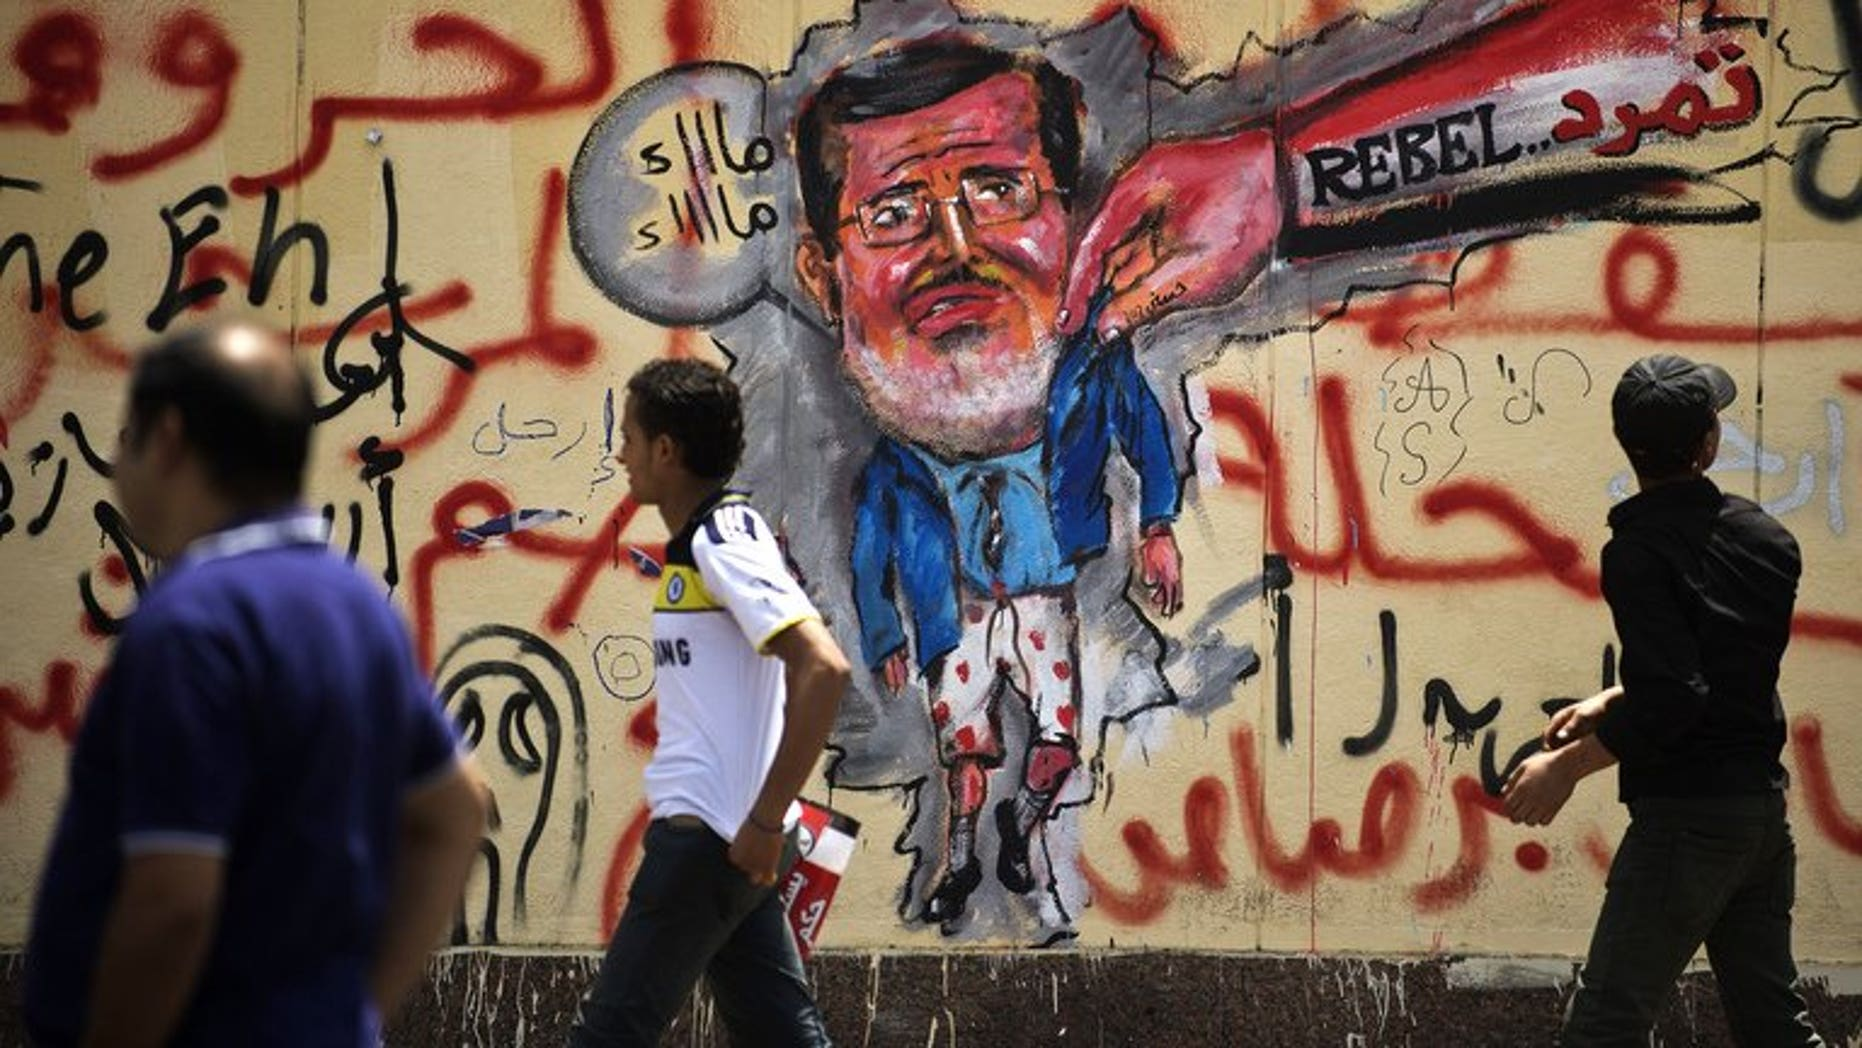 Egyptian protesters walk past graffiti against Mohamed Morsi on the wall of the presidential palace in Cairo, on July 1, 2013. Egypt's ministers of tourism, environment, communication and legal affairs have tendered their resignations a day after massive protests against Morsi swept the country, a senior government official told AFP.